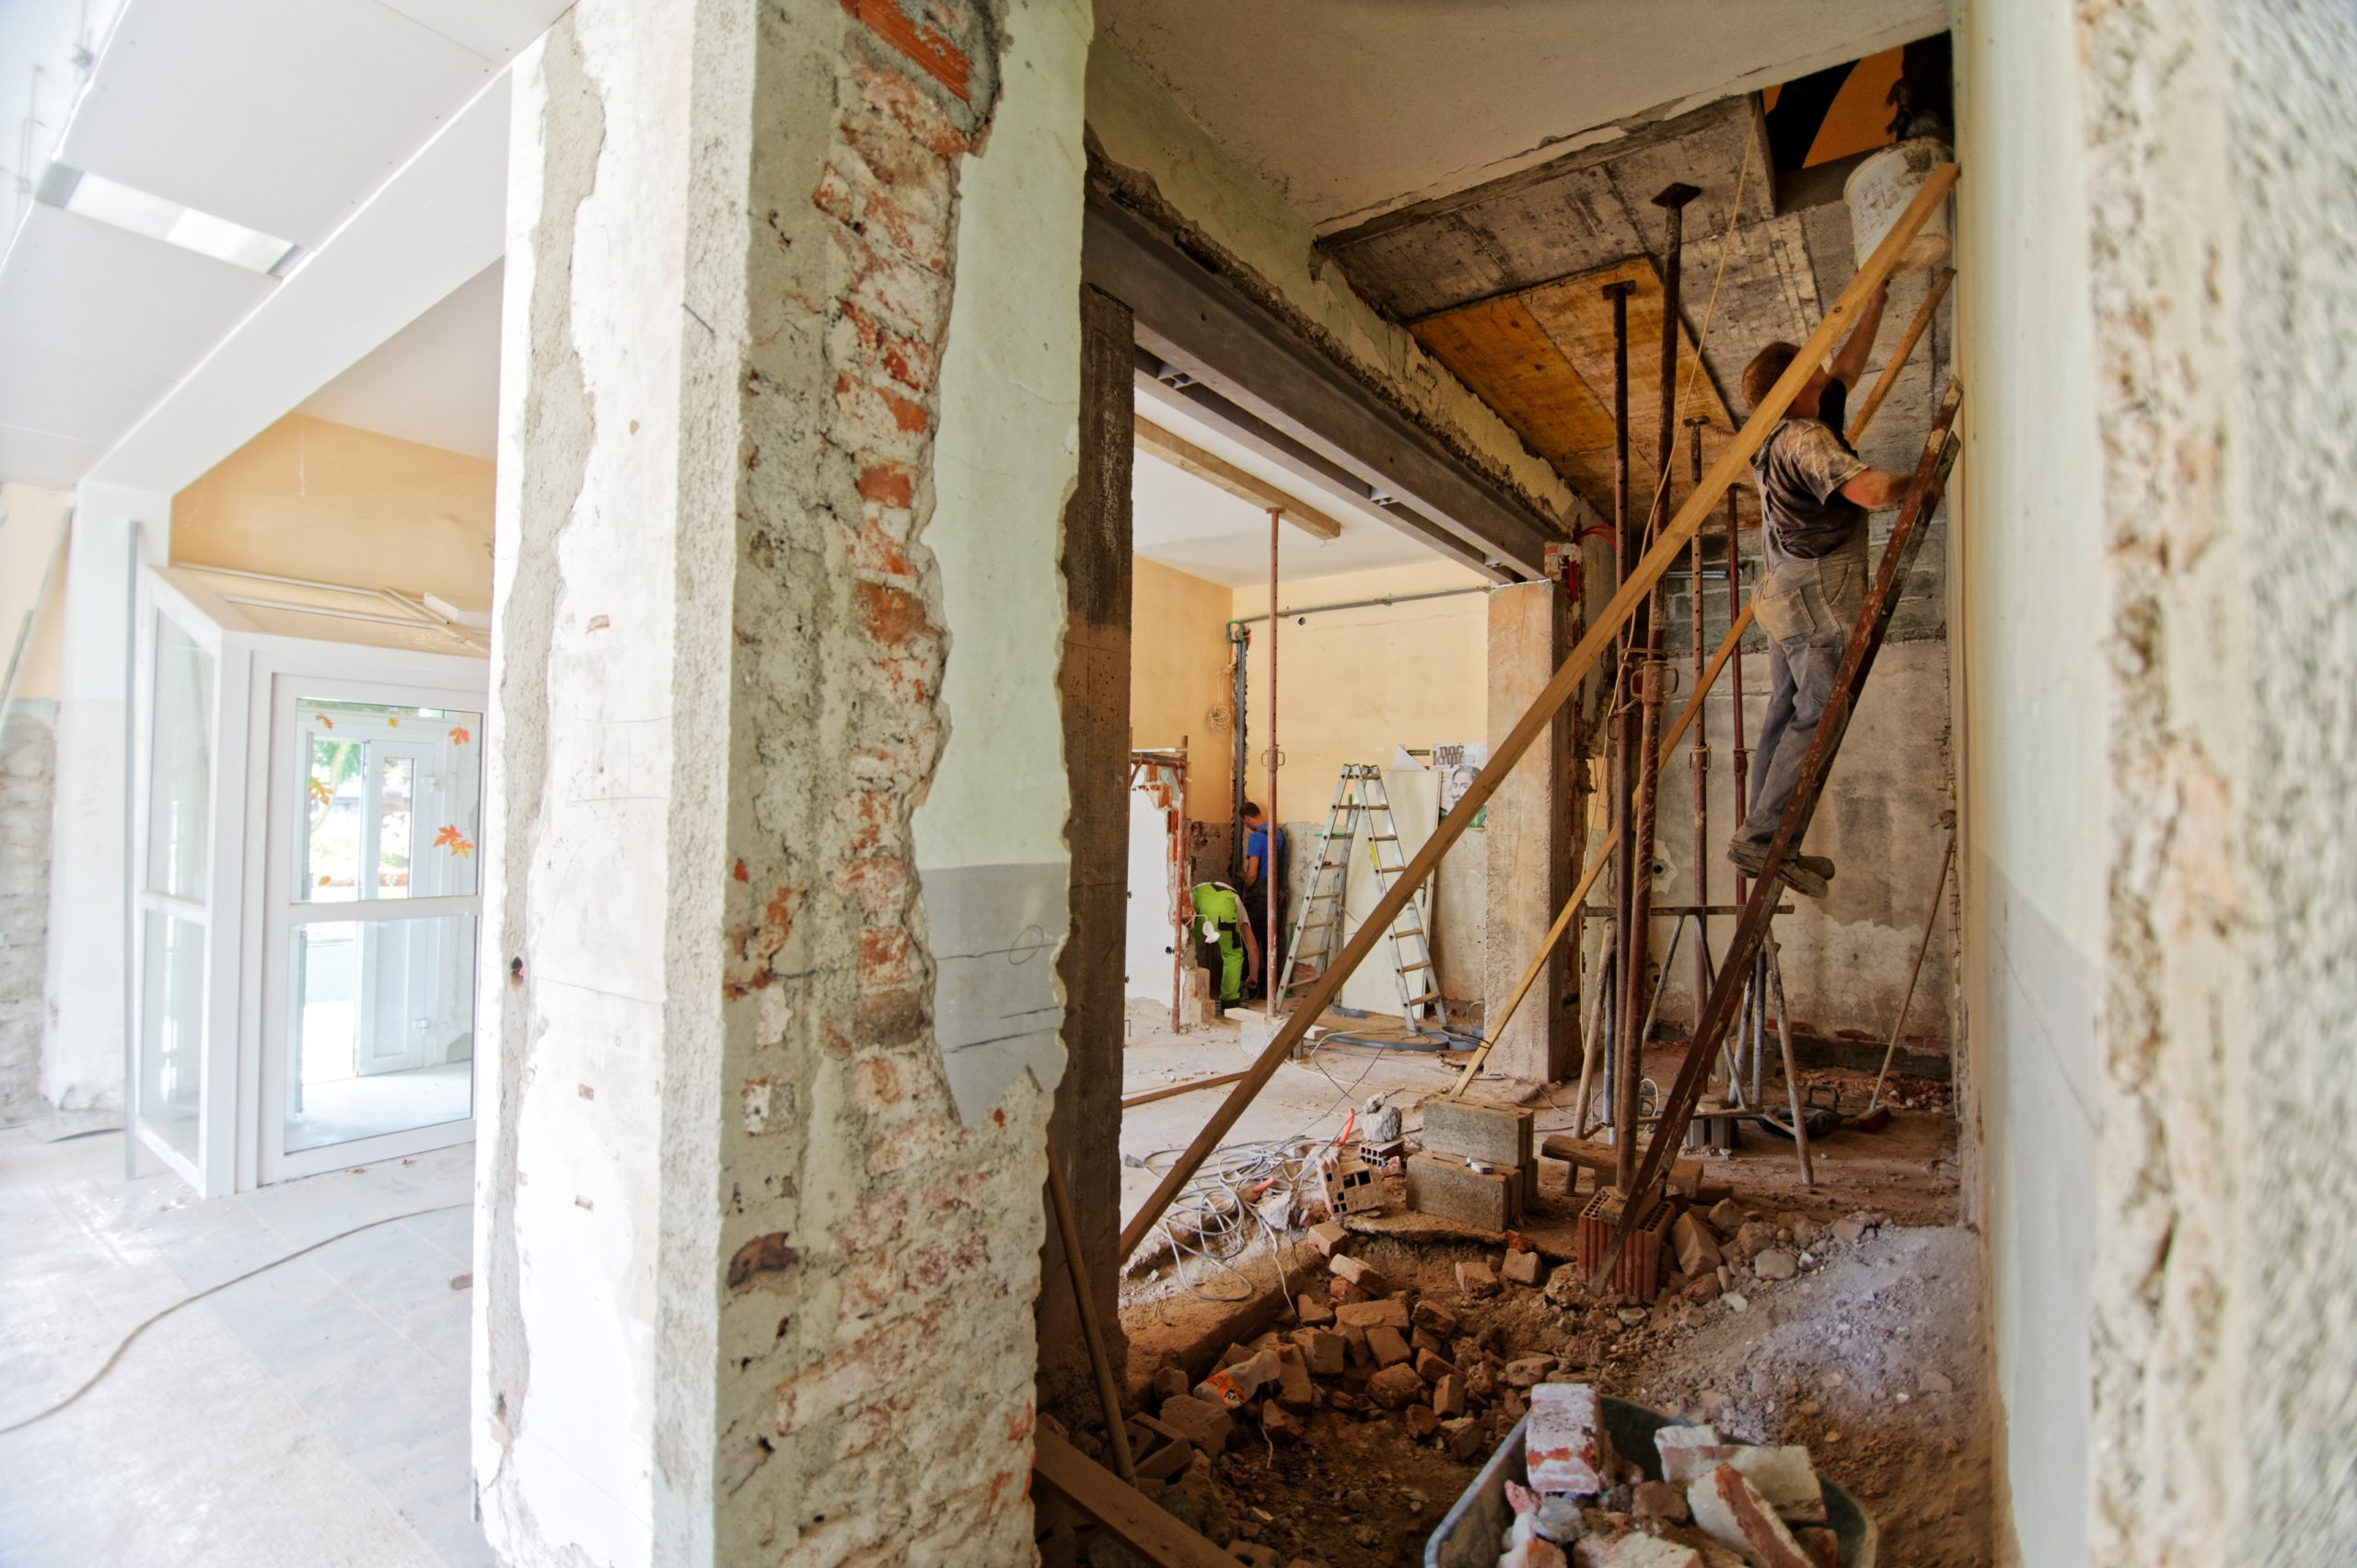 3 Simple Ways to Get Home Improvement Loans with No Equity